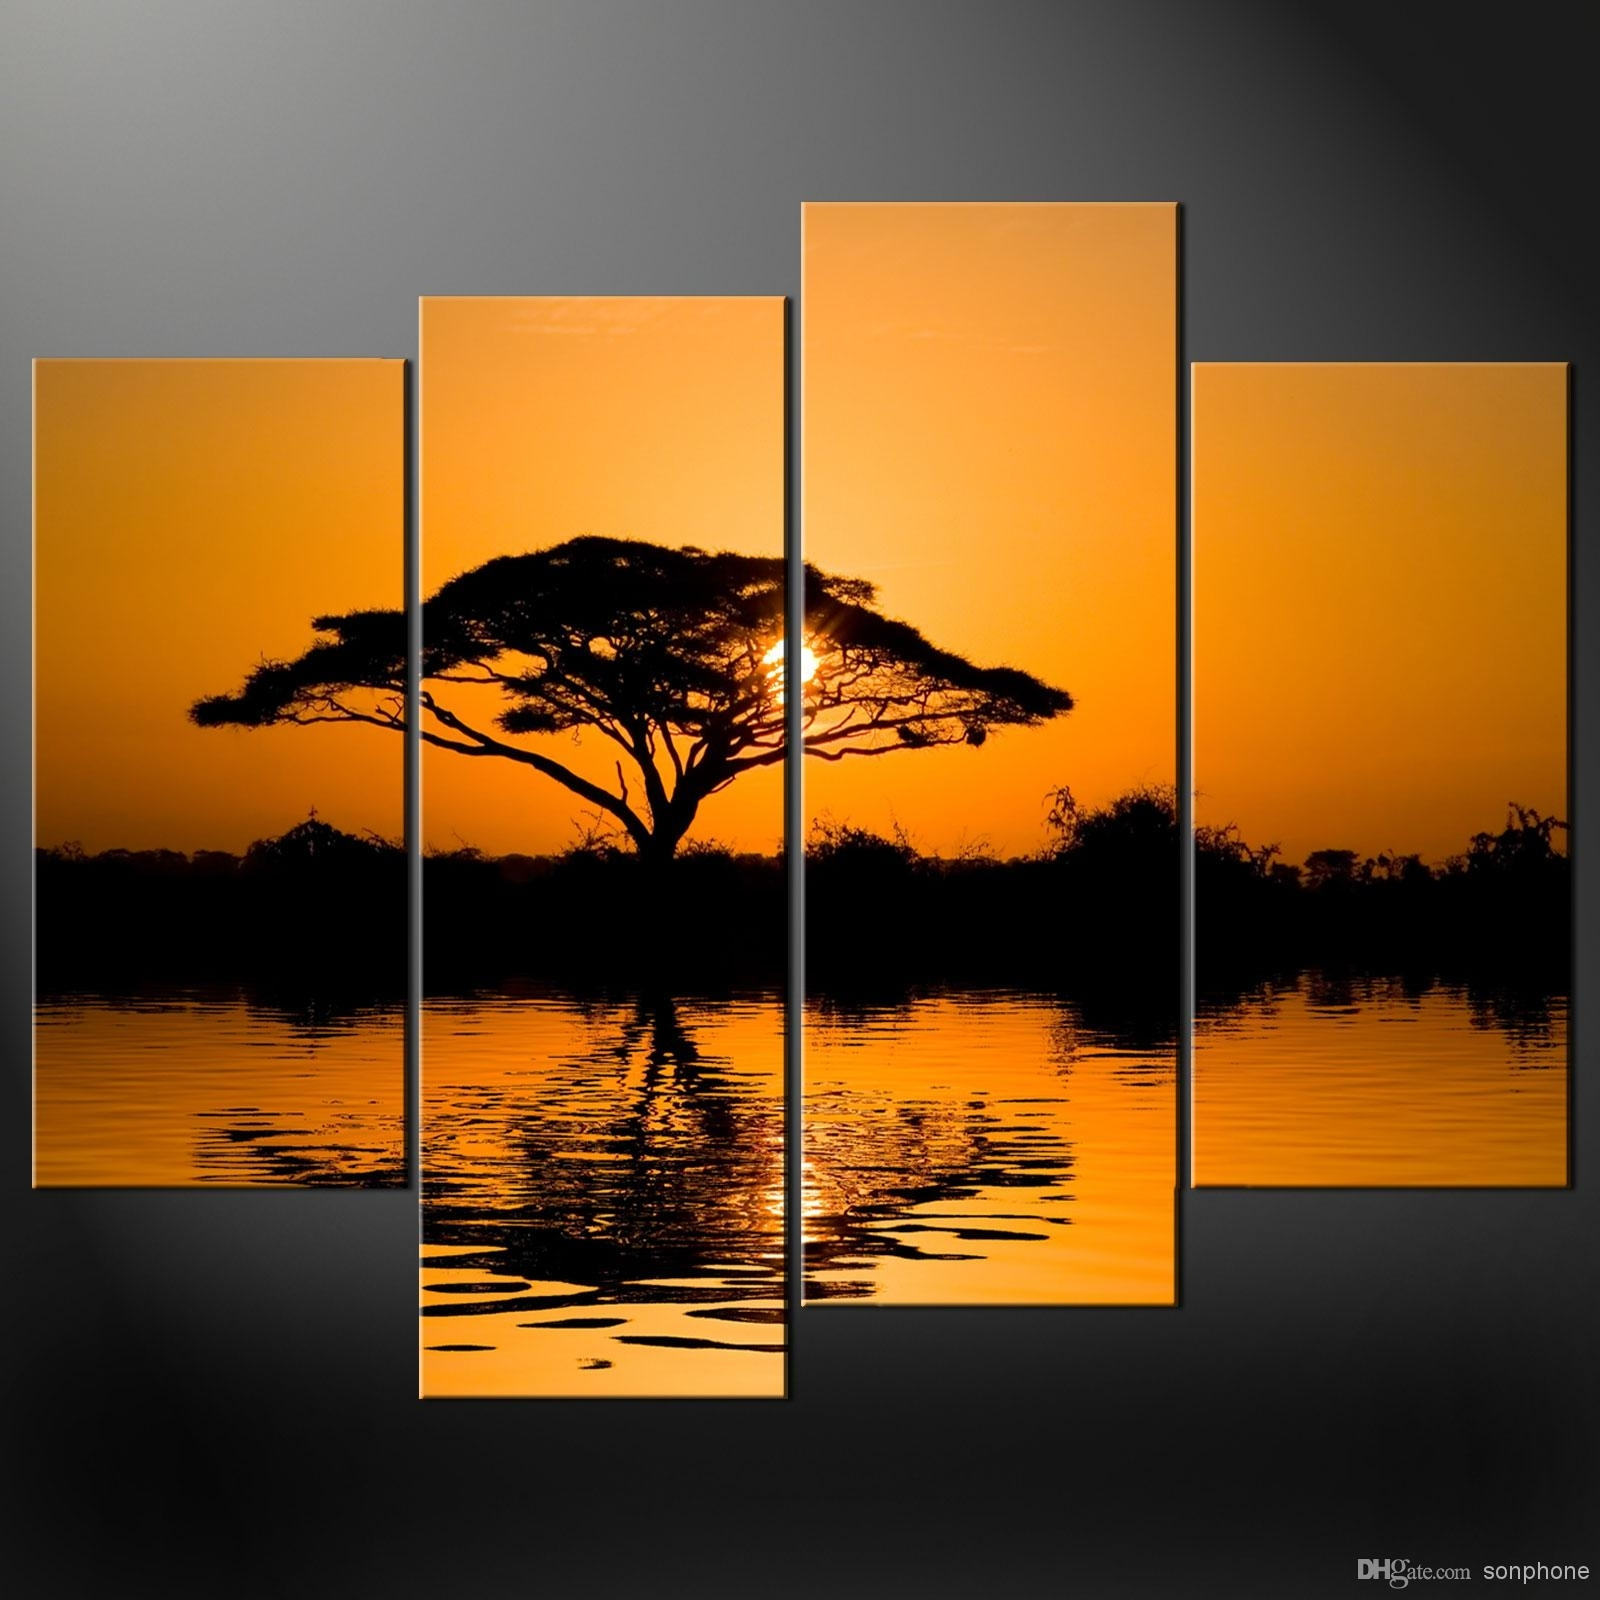 Framed 4 Panel Large African Wall Art Decor Modern Sunset Oil Throughout Newest Panel Wall Art (View 4 of 20)